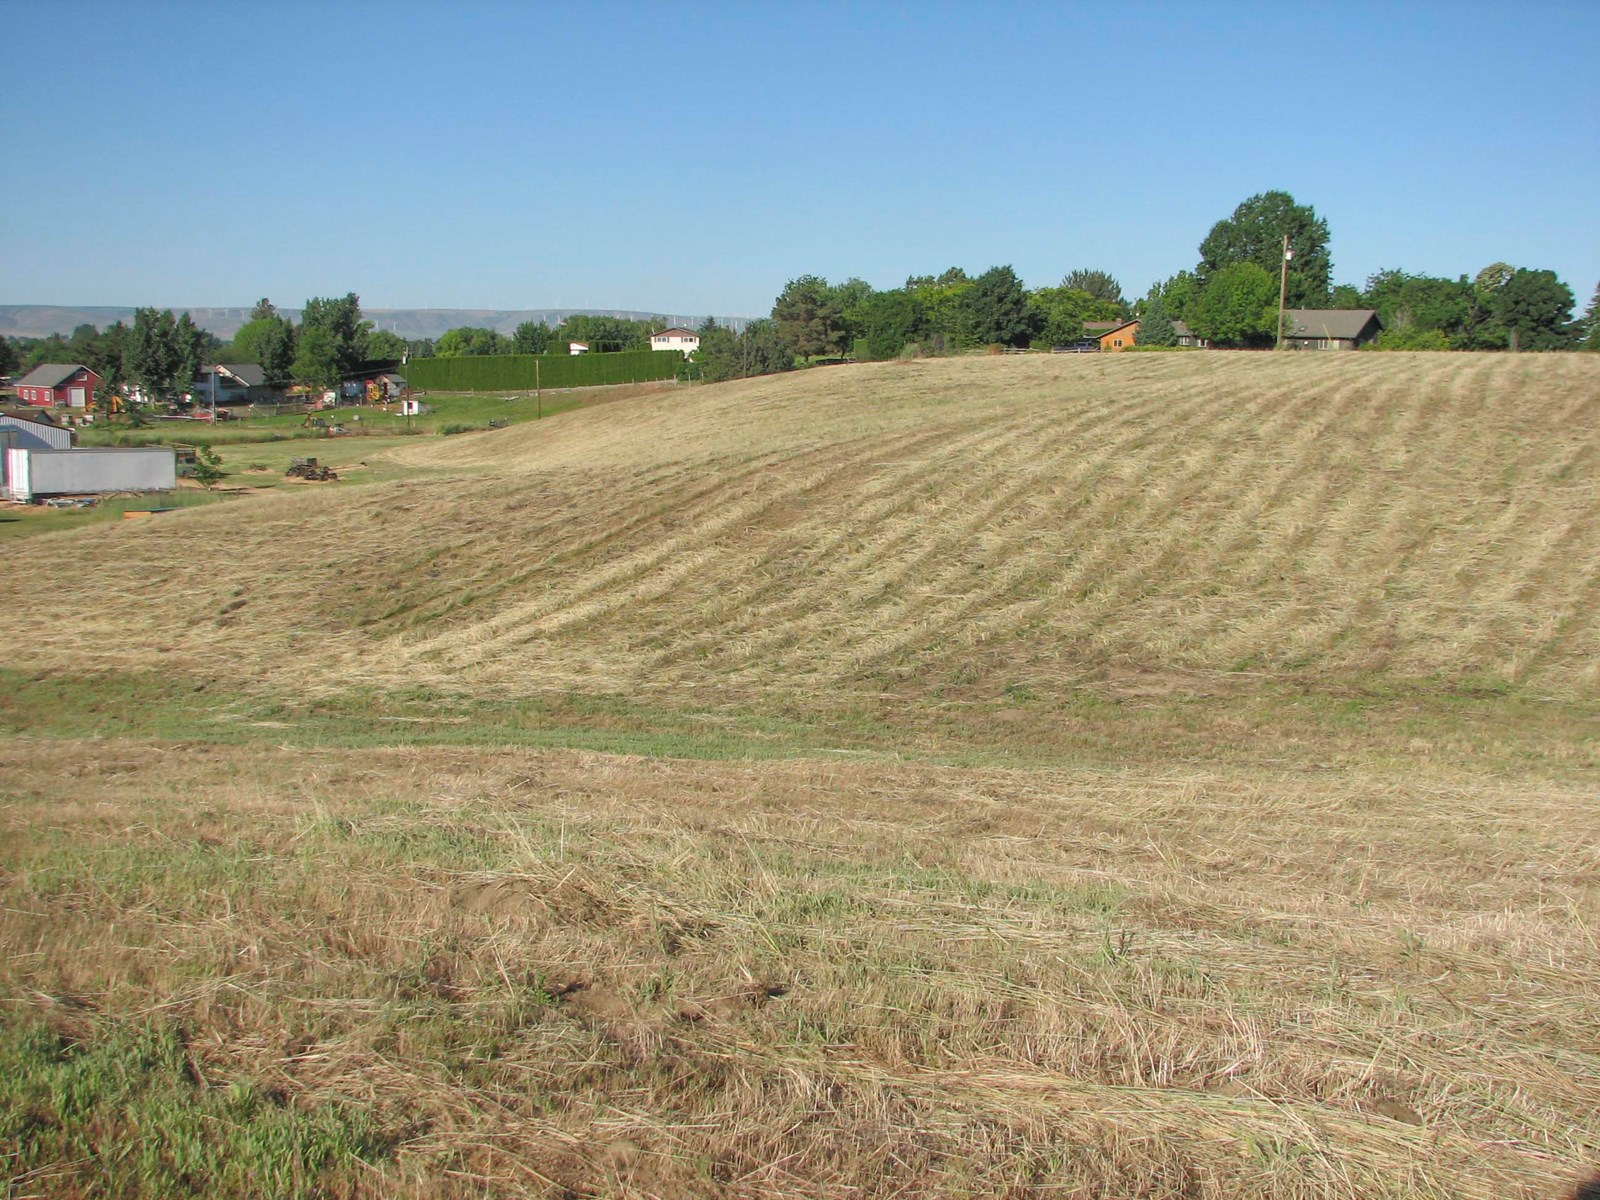 6 Acre View Lot For Sale Walla Walla - Heart of Wine Country